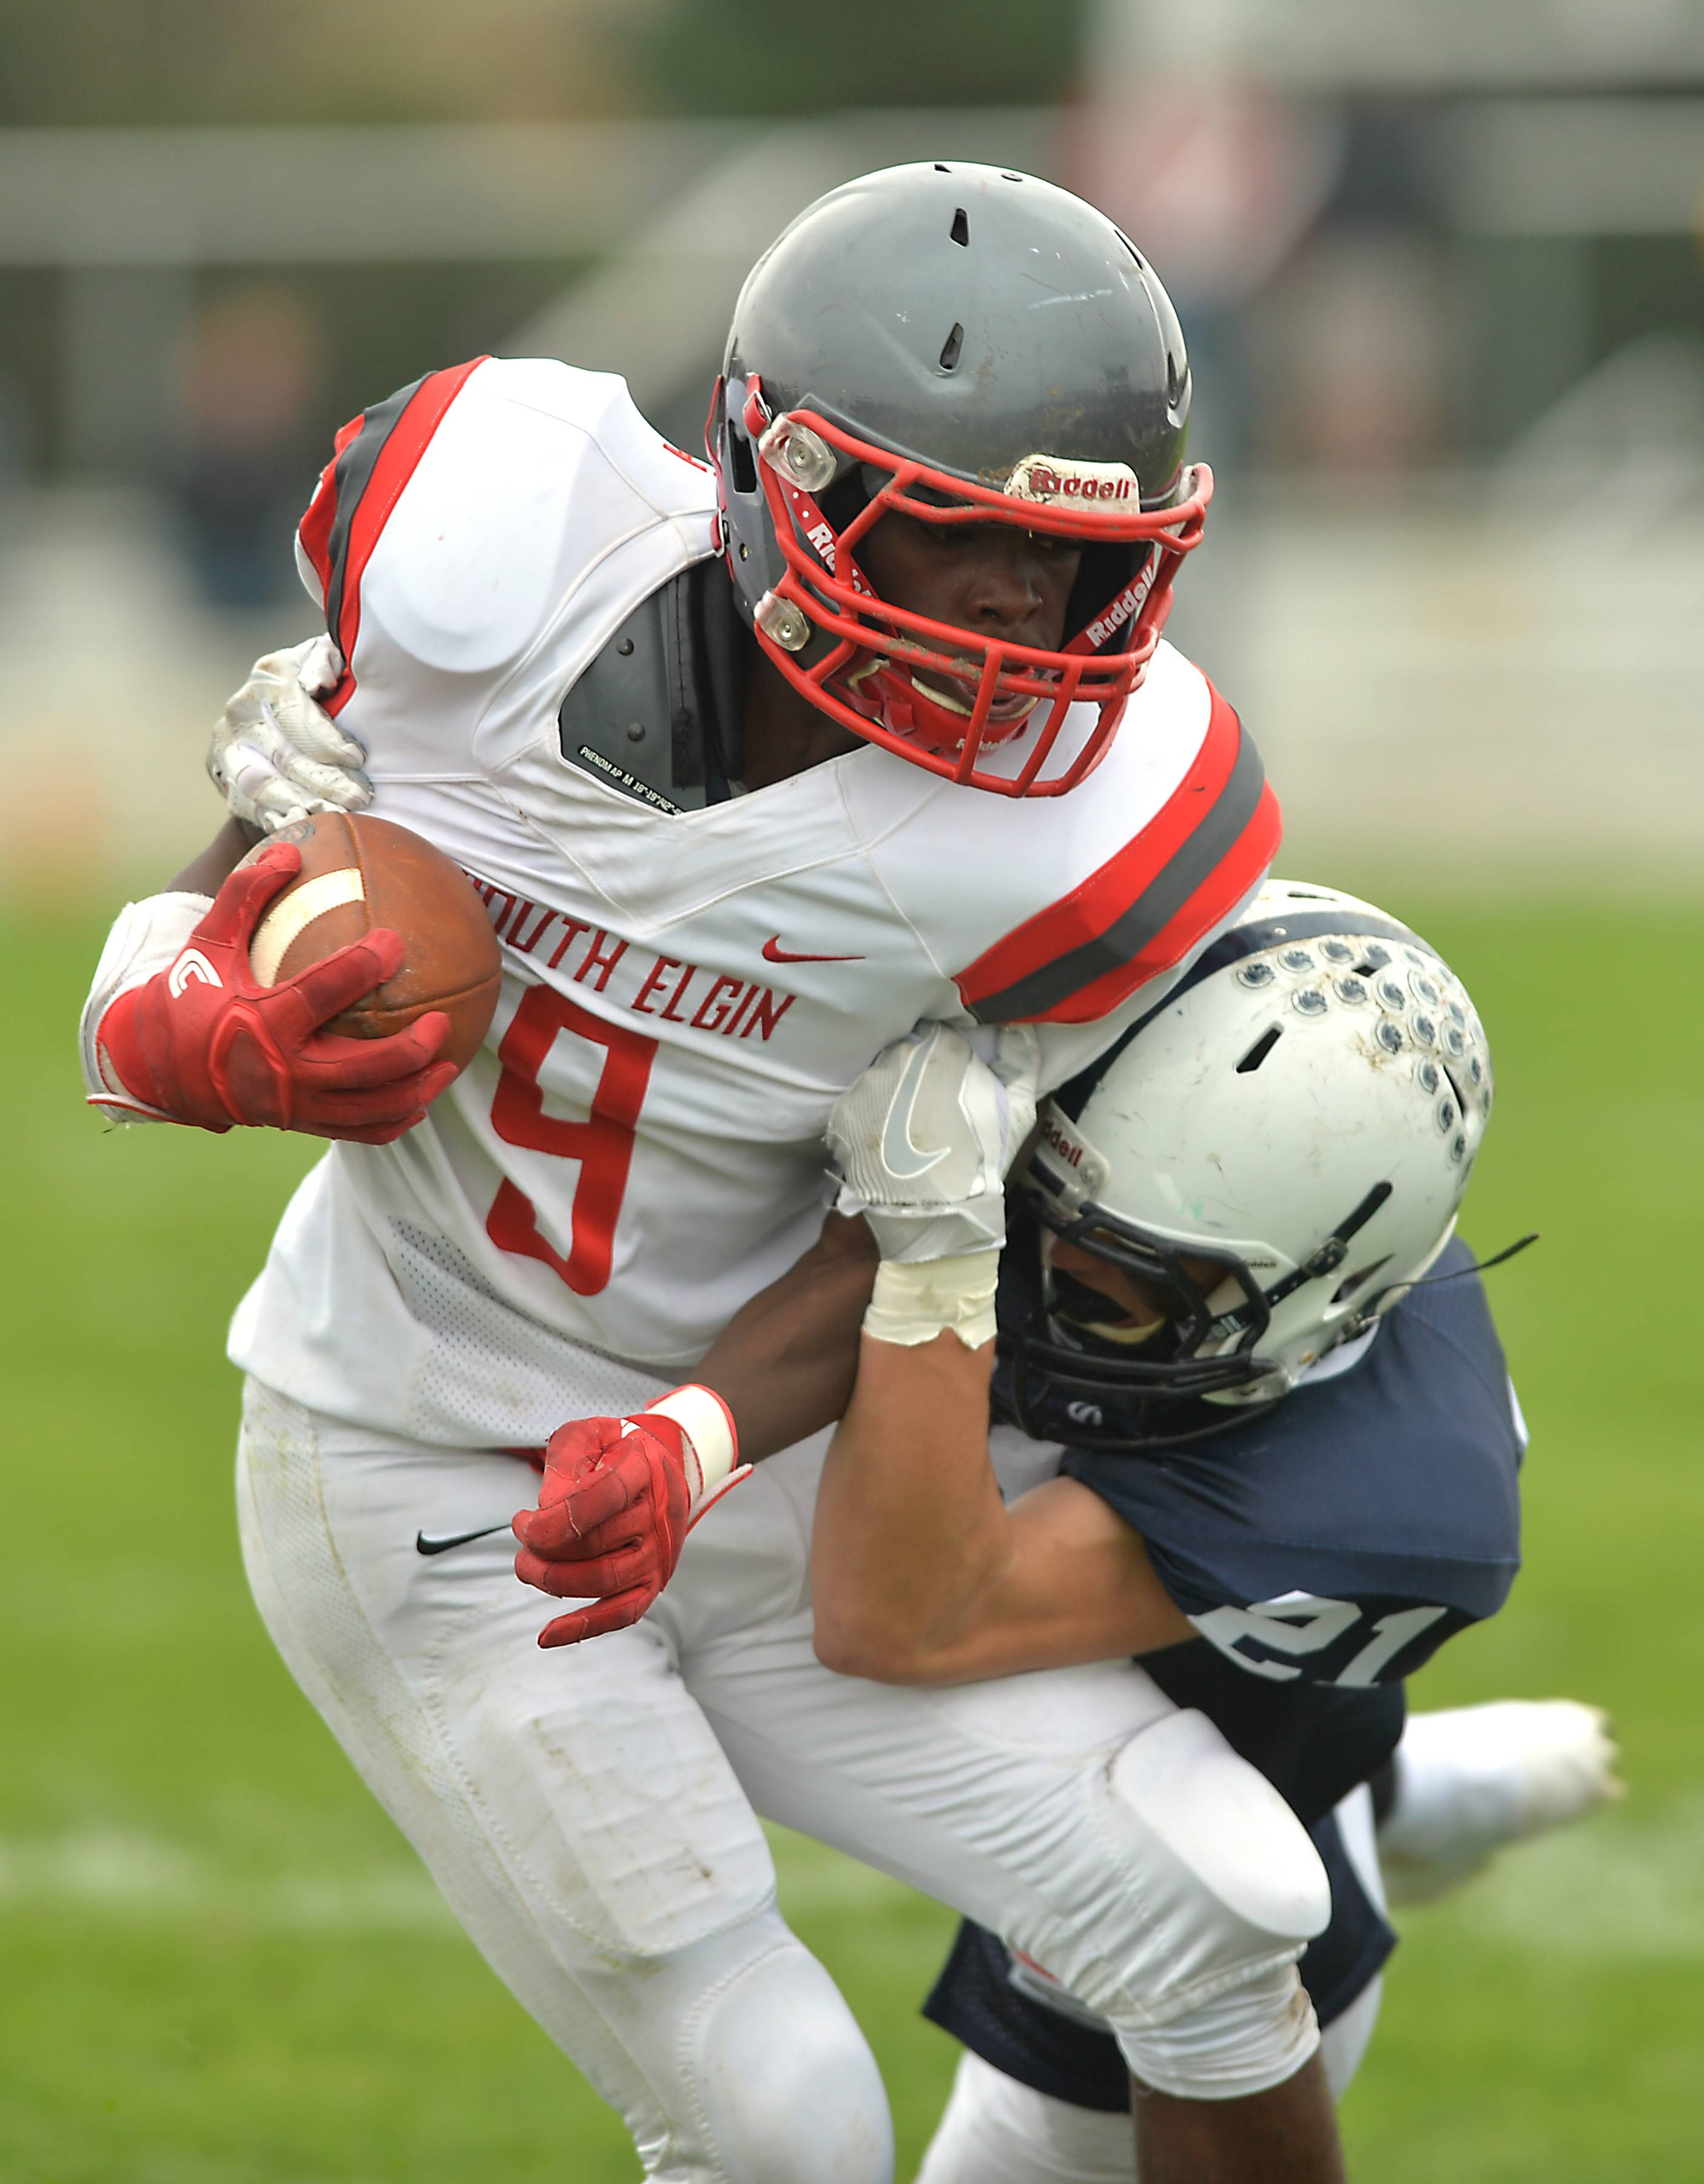 South Elgin receiver Dasmond Lockett tries to spin away from as Cary-Grove defensive back Danny Daigle in the second quarter Saturday in Cary.